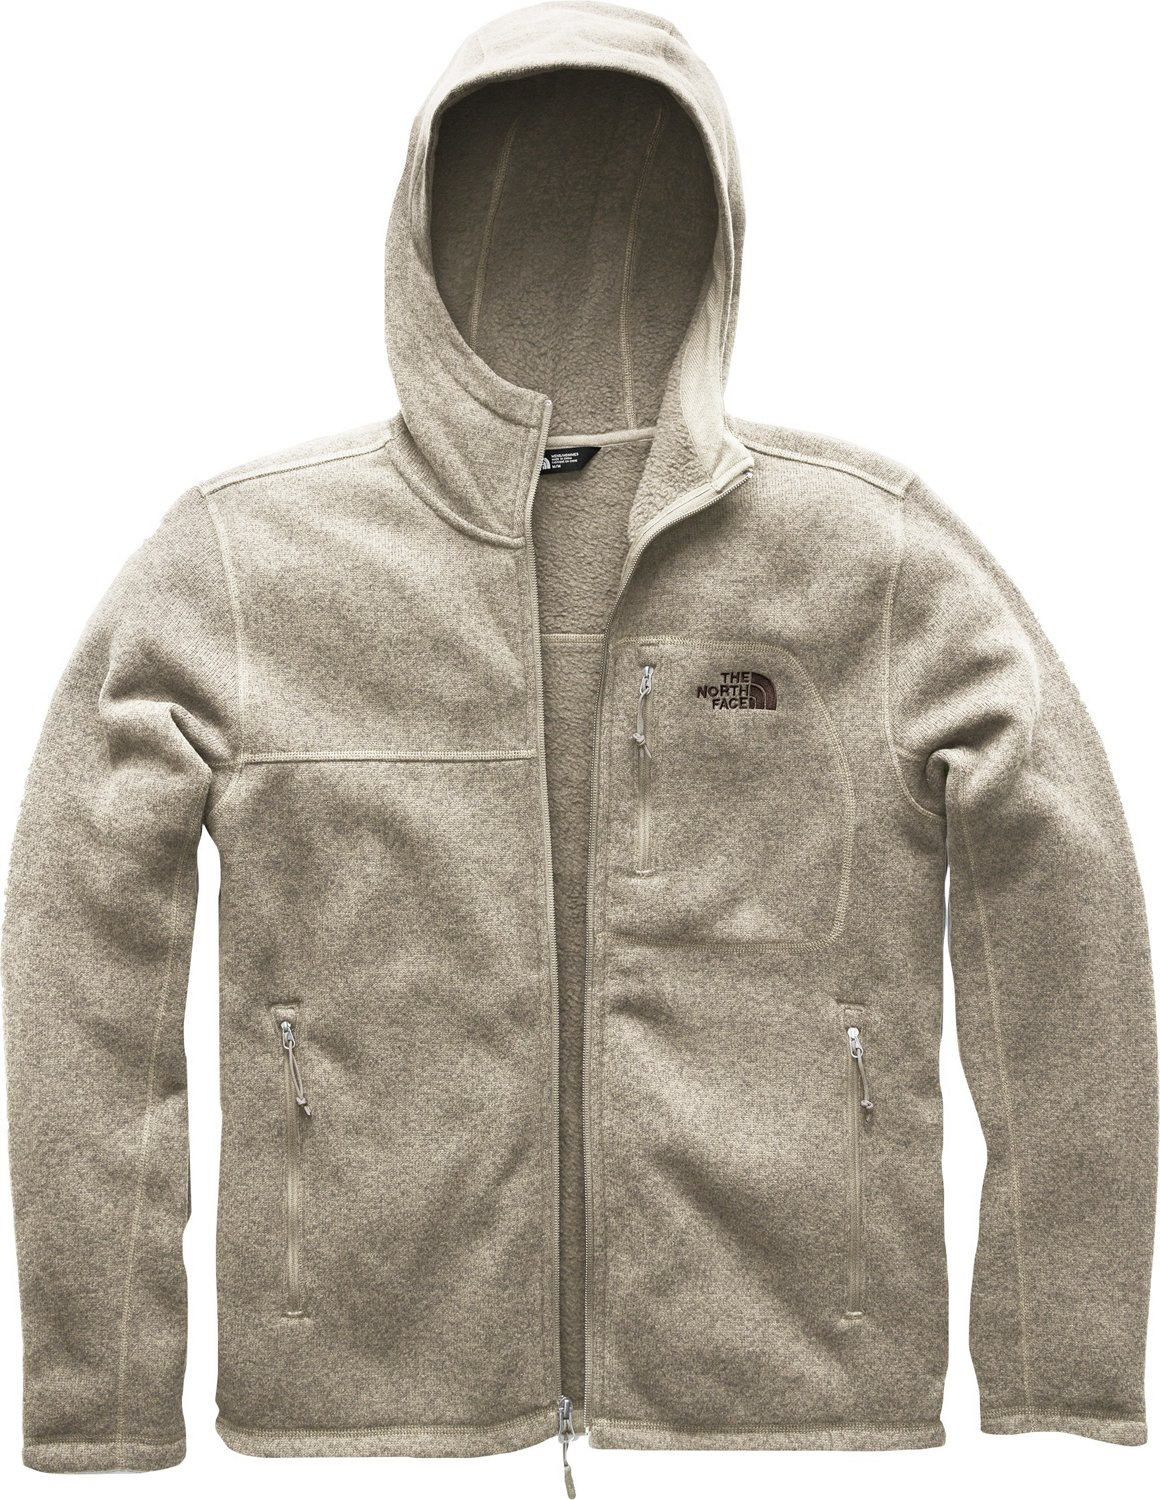 baedca6dd The North Face Men's Gordon Lyons Hoodie